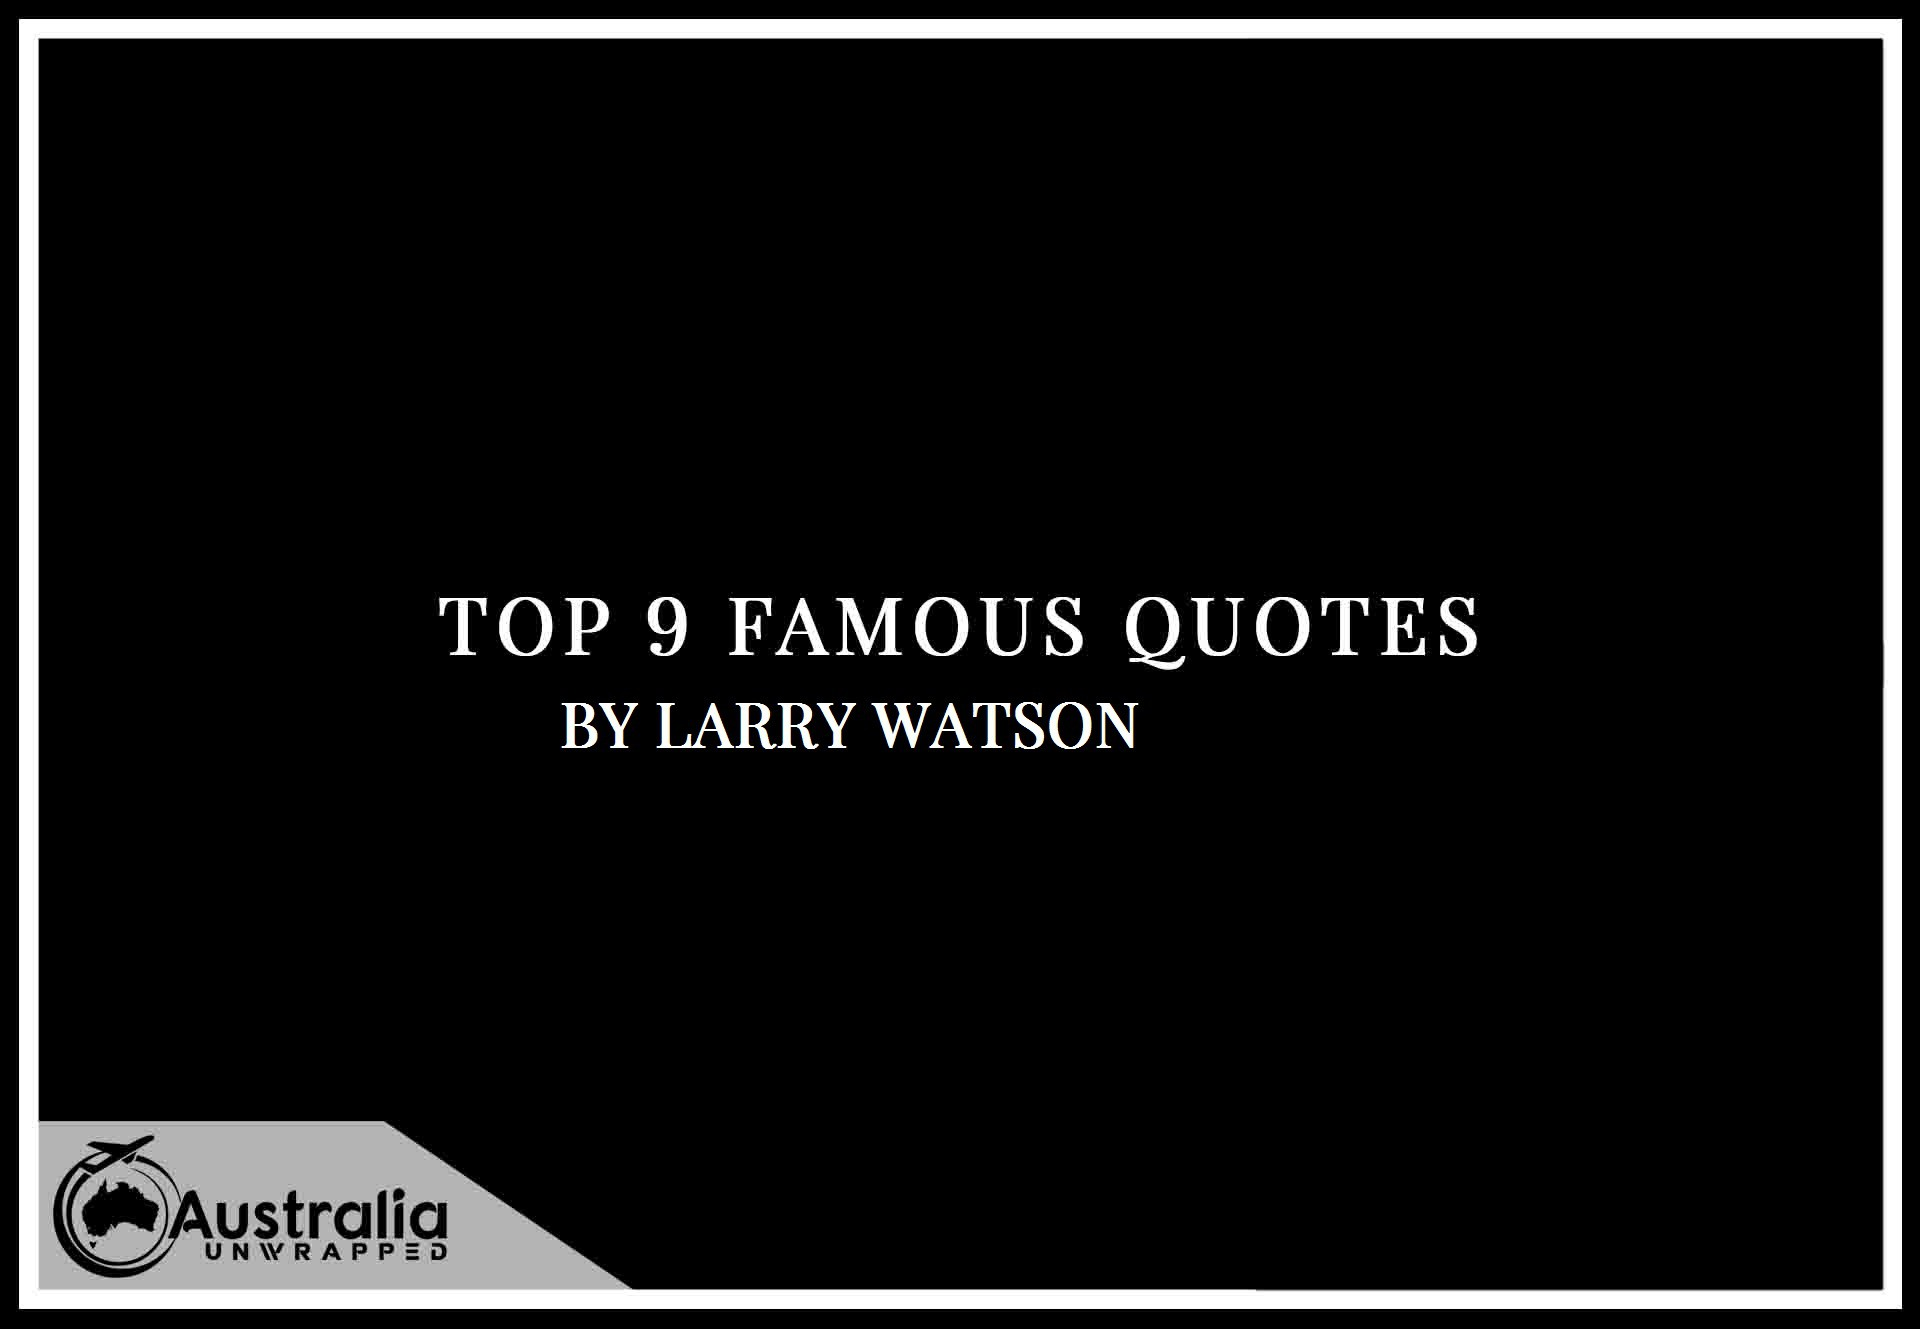 Larry Watson's Top 9 Popular and Famous Quotes